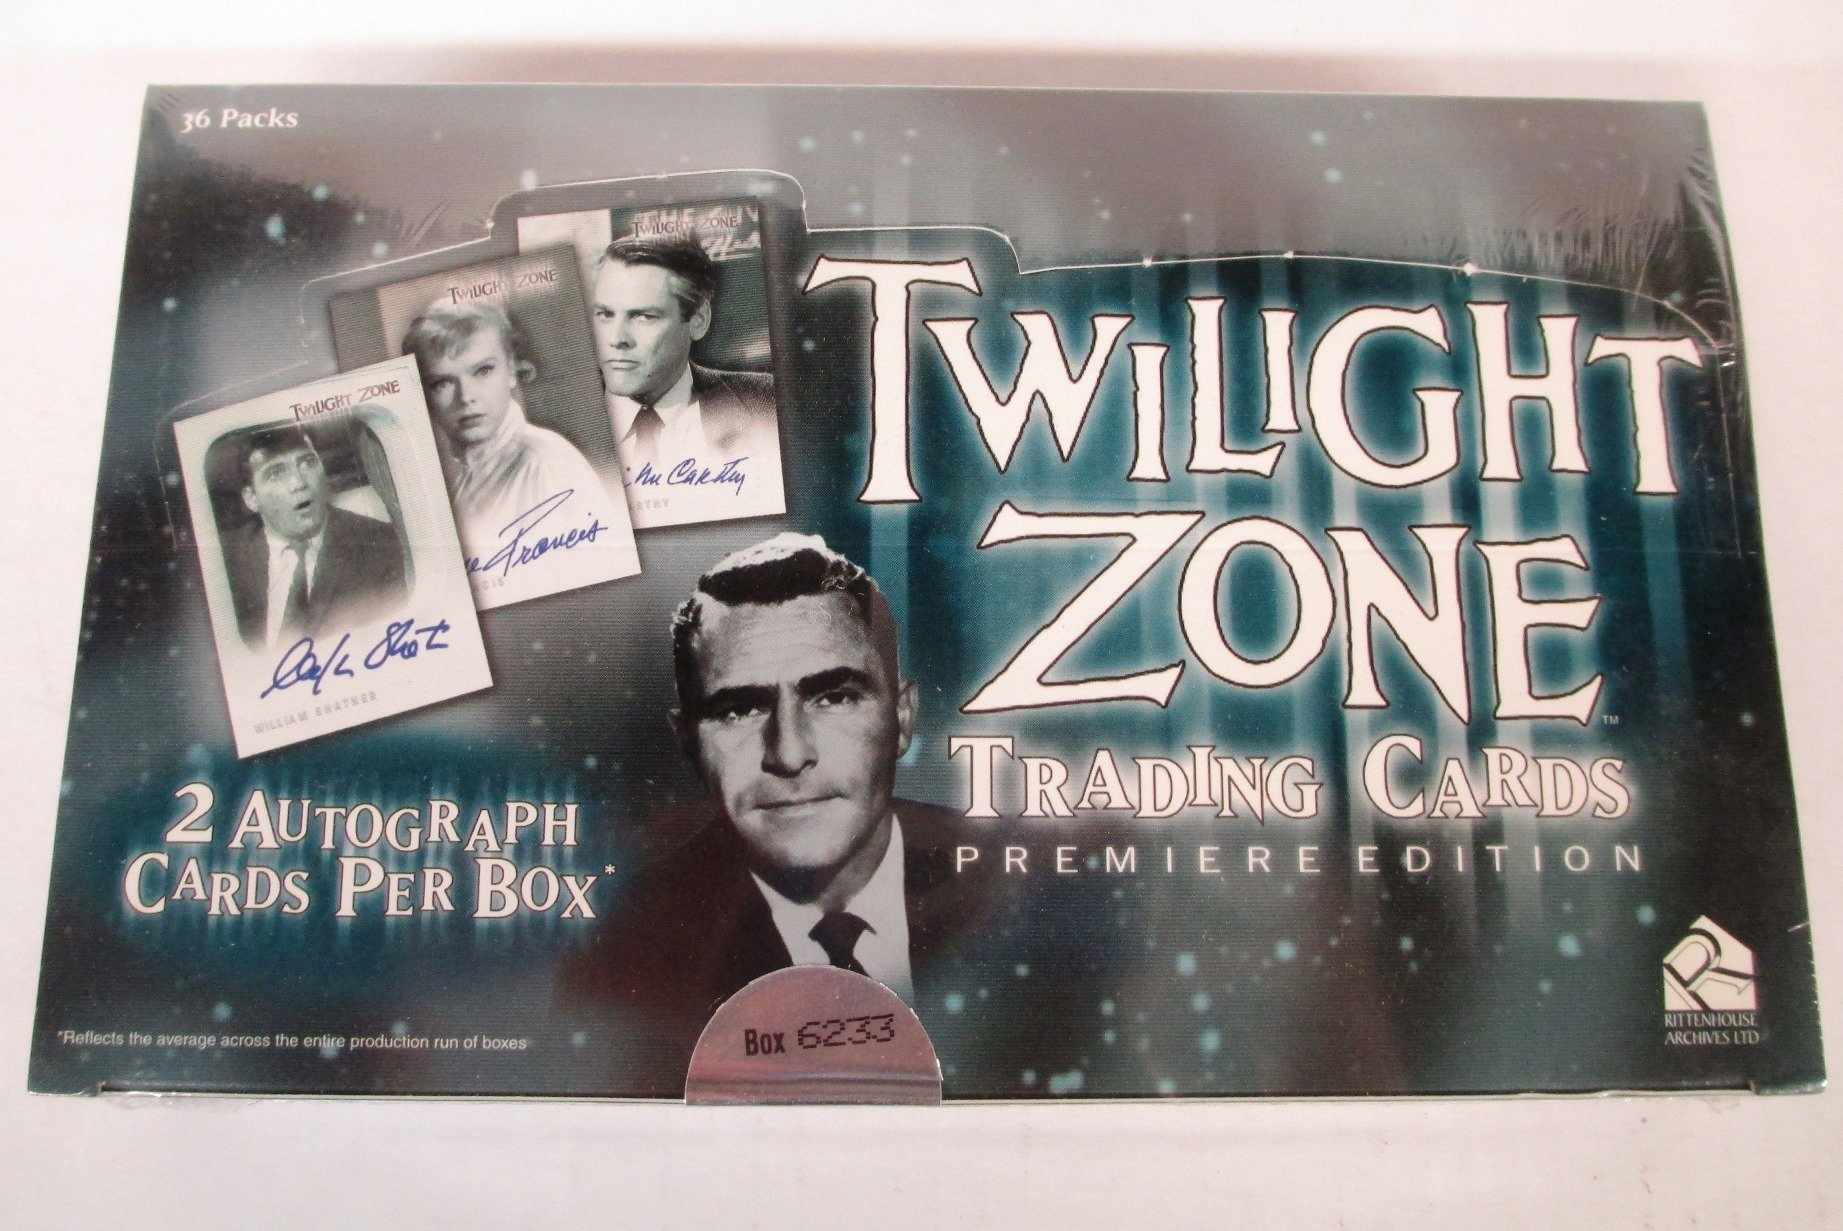 The Twilight Zone Premiere Edition Trading Cards Box Set with Autograph Card by Twilight Zone